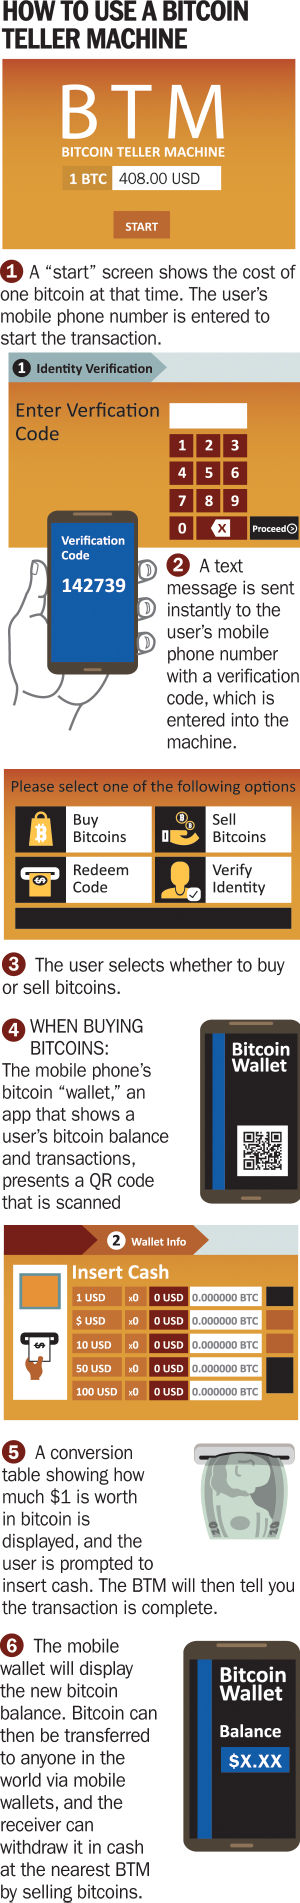 How to use a Bitcoin teller machine